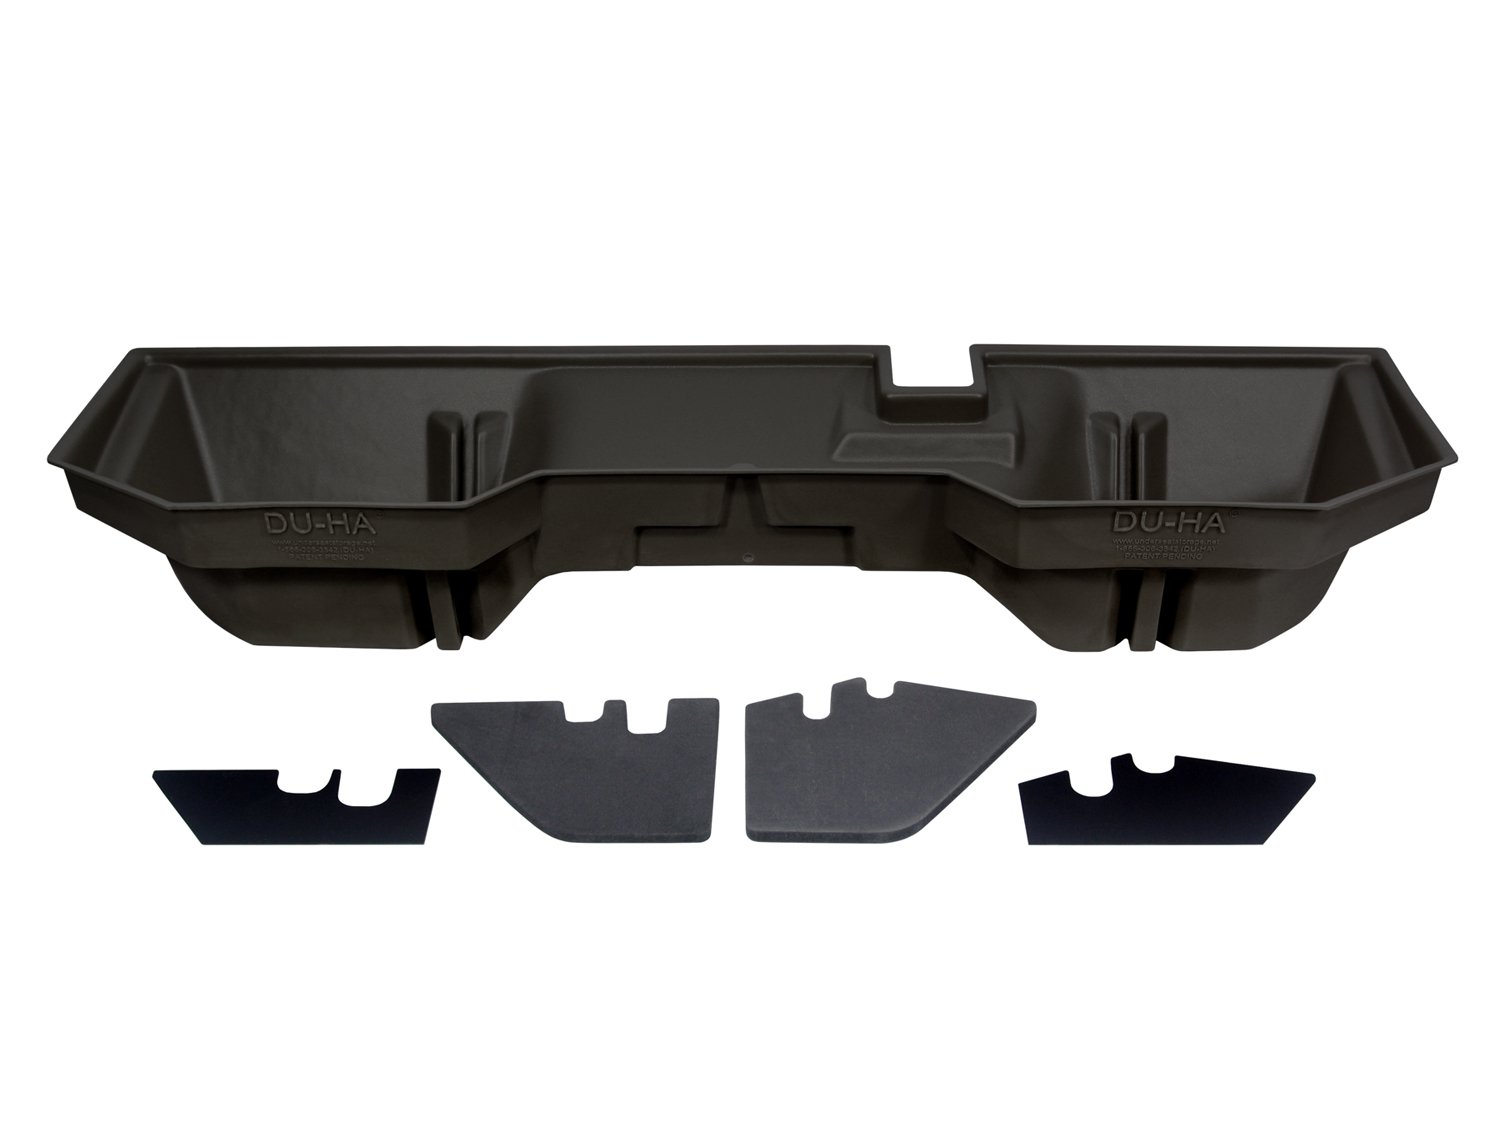 Du Ha 30017 Under Seat Storage Console Organizer DUH:30017